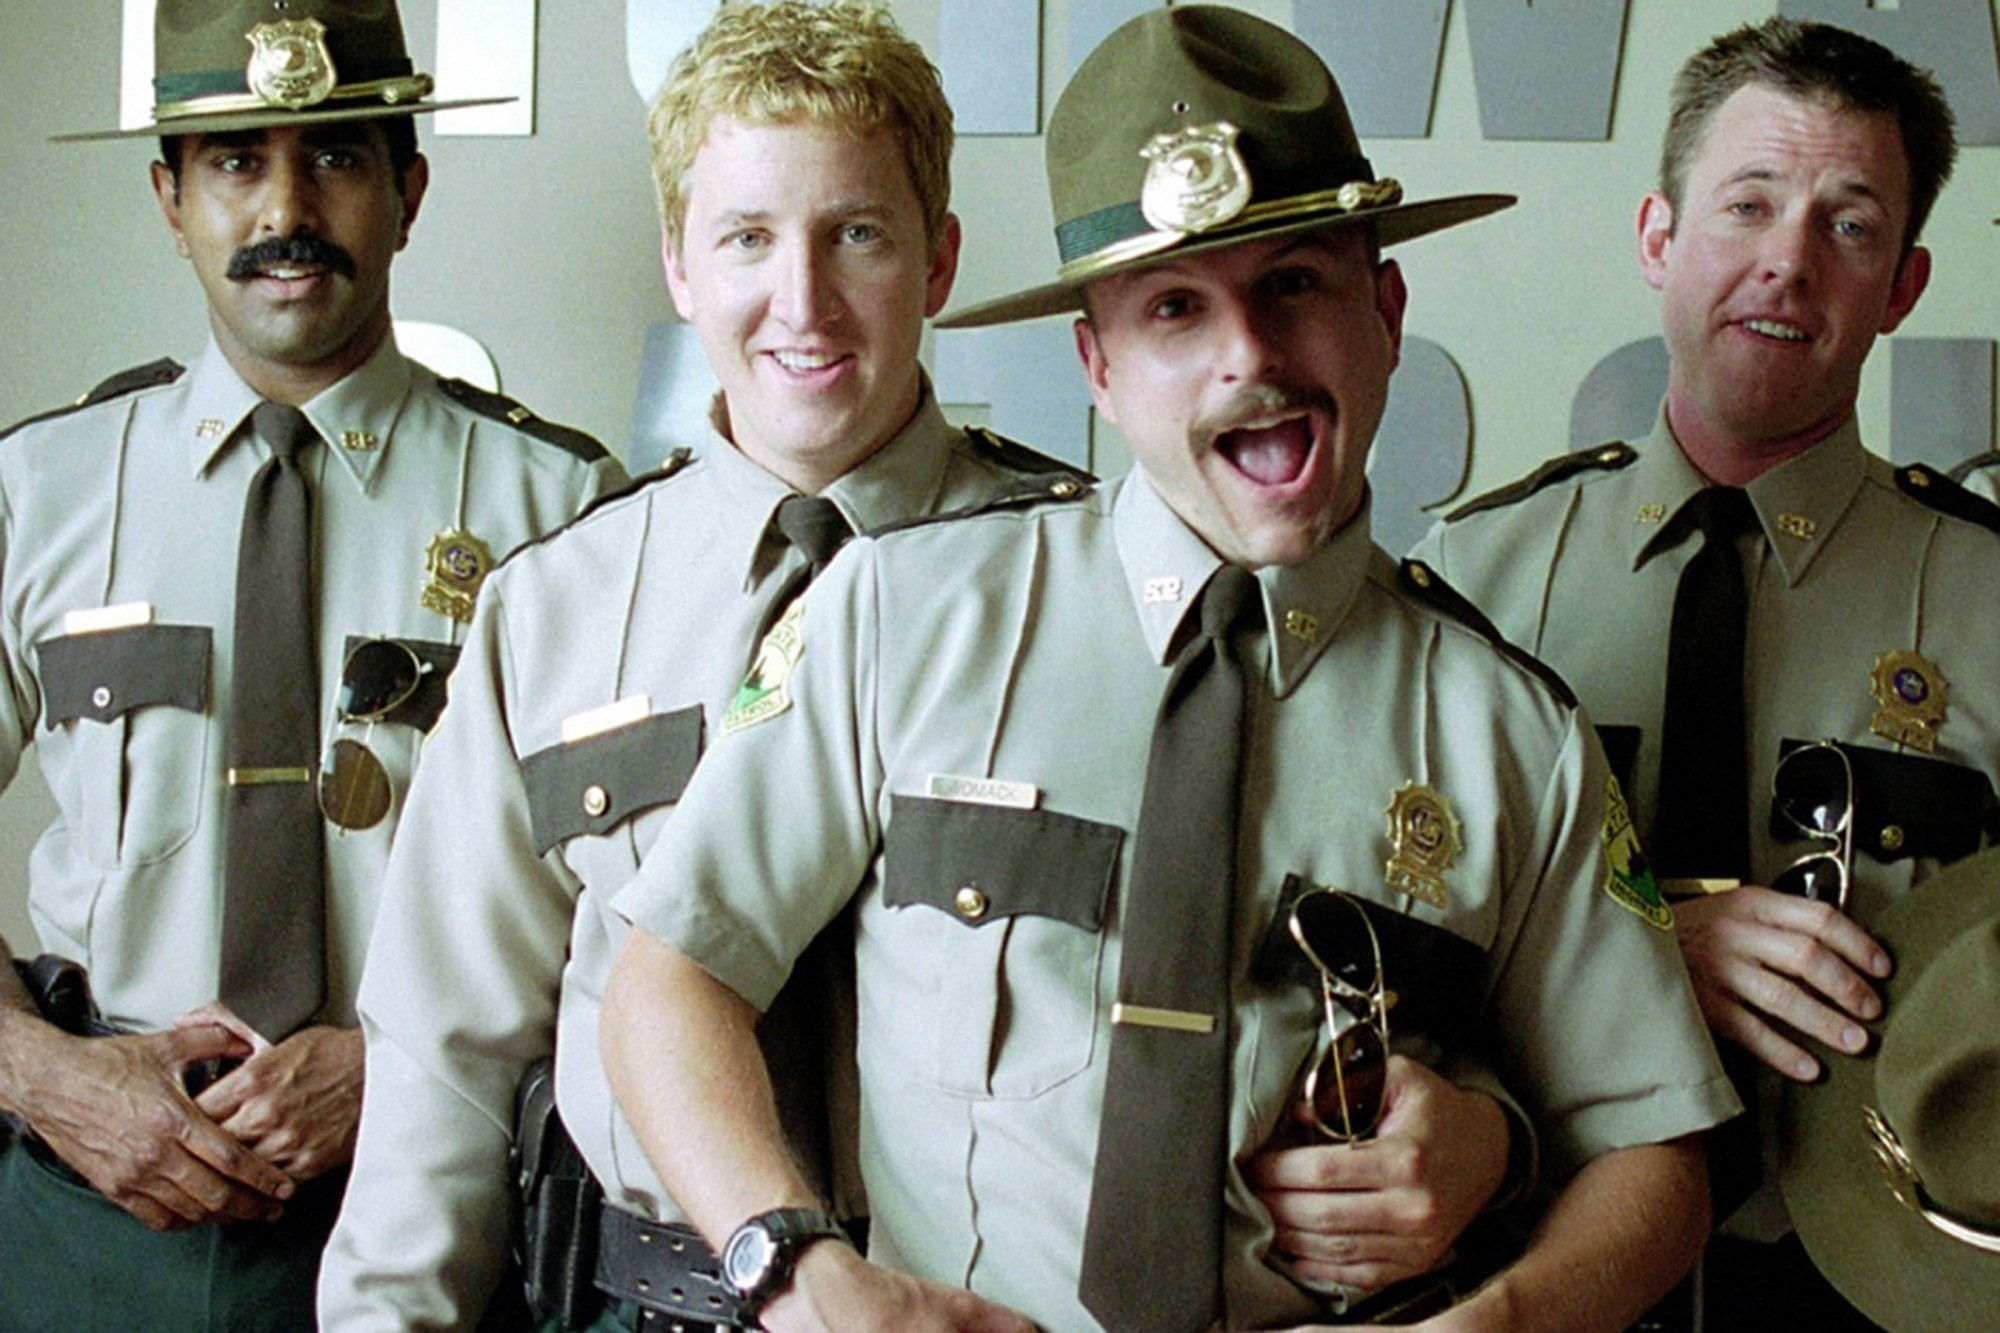 super troopers 2 free full movie download